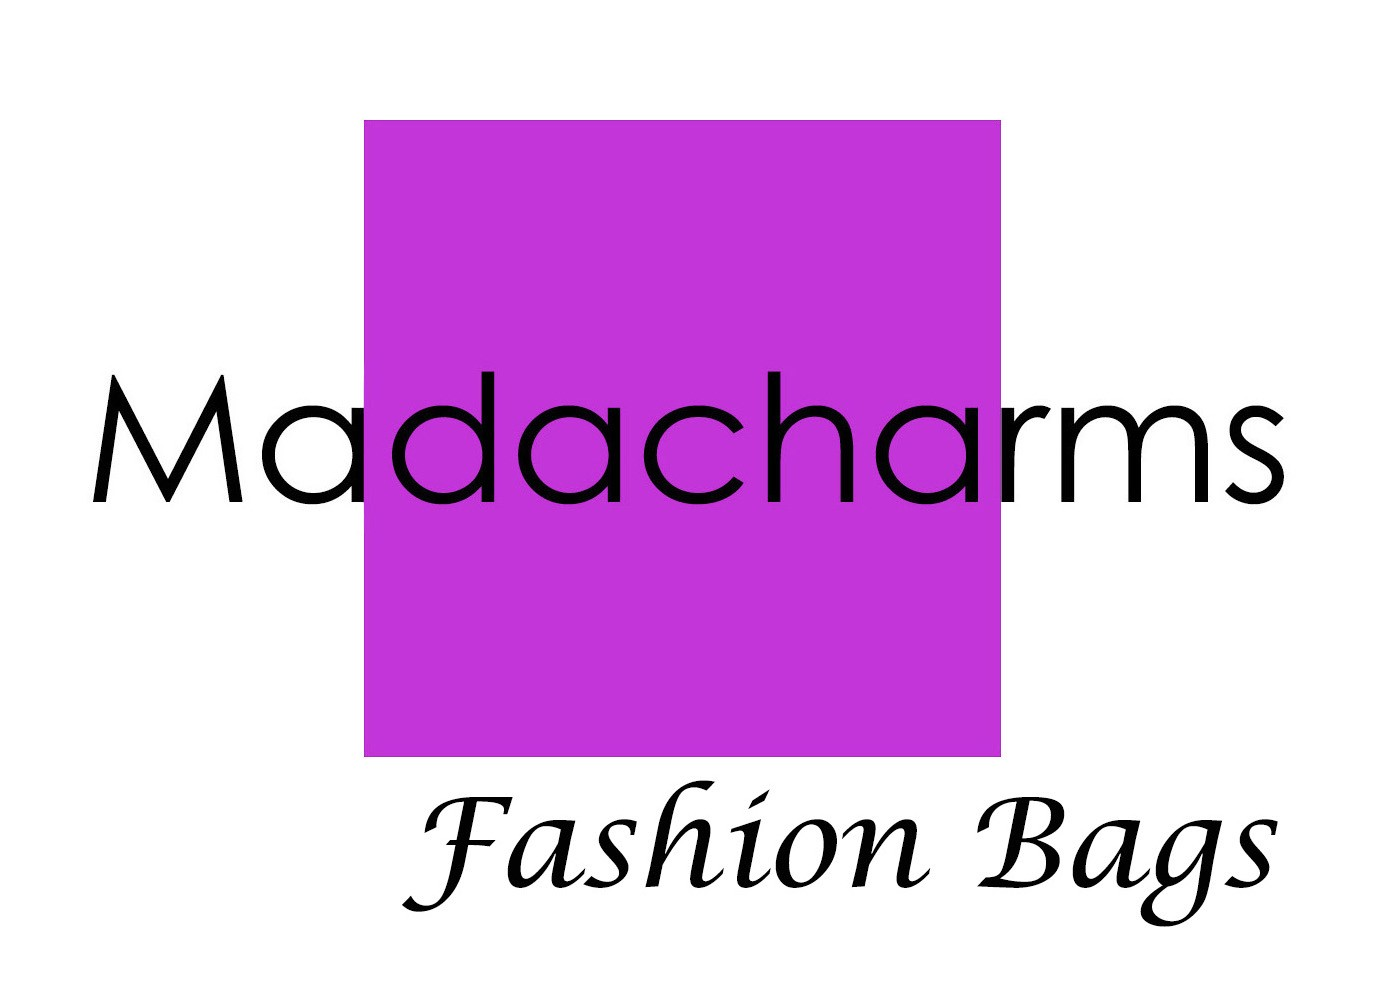 Madacharms Design